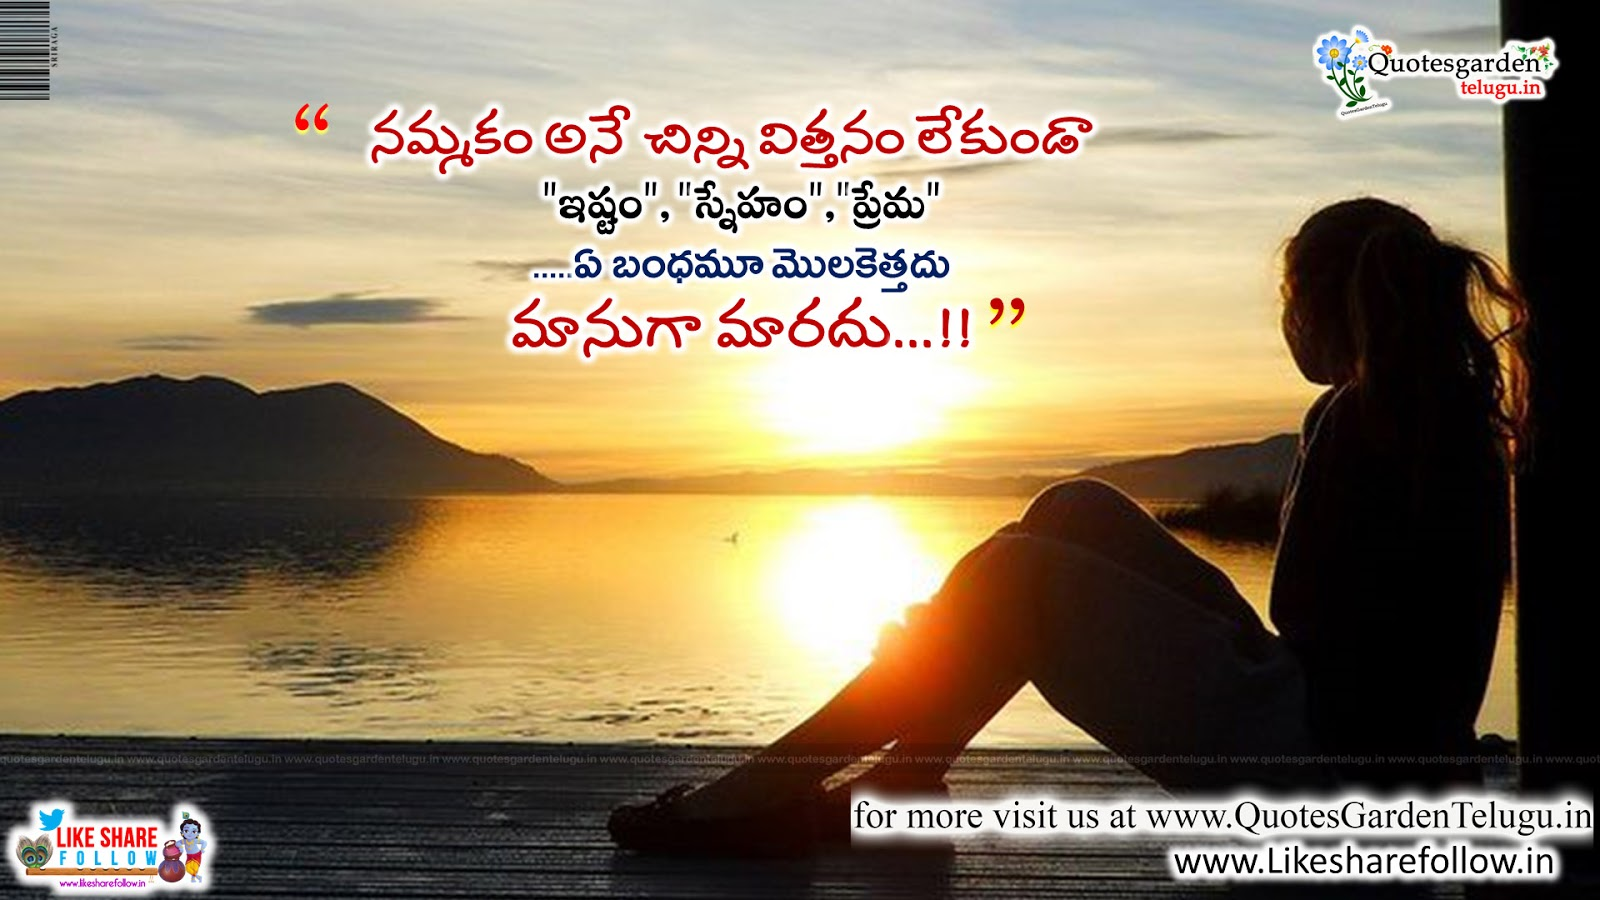 Telugu Love Quotes Wallpapers Free Download - Lonely Girl Image For Whatsapp Dp - HD Wallpaper